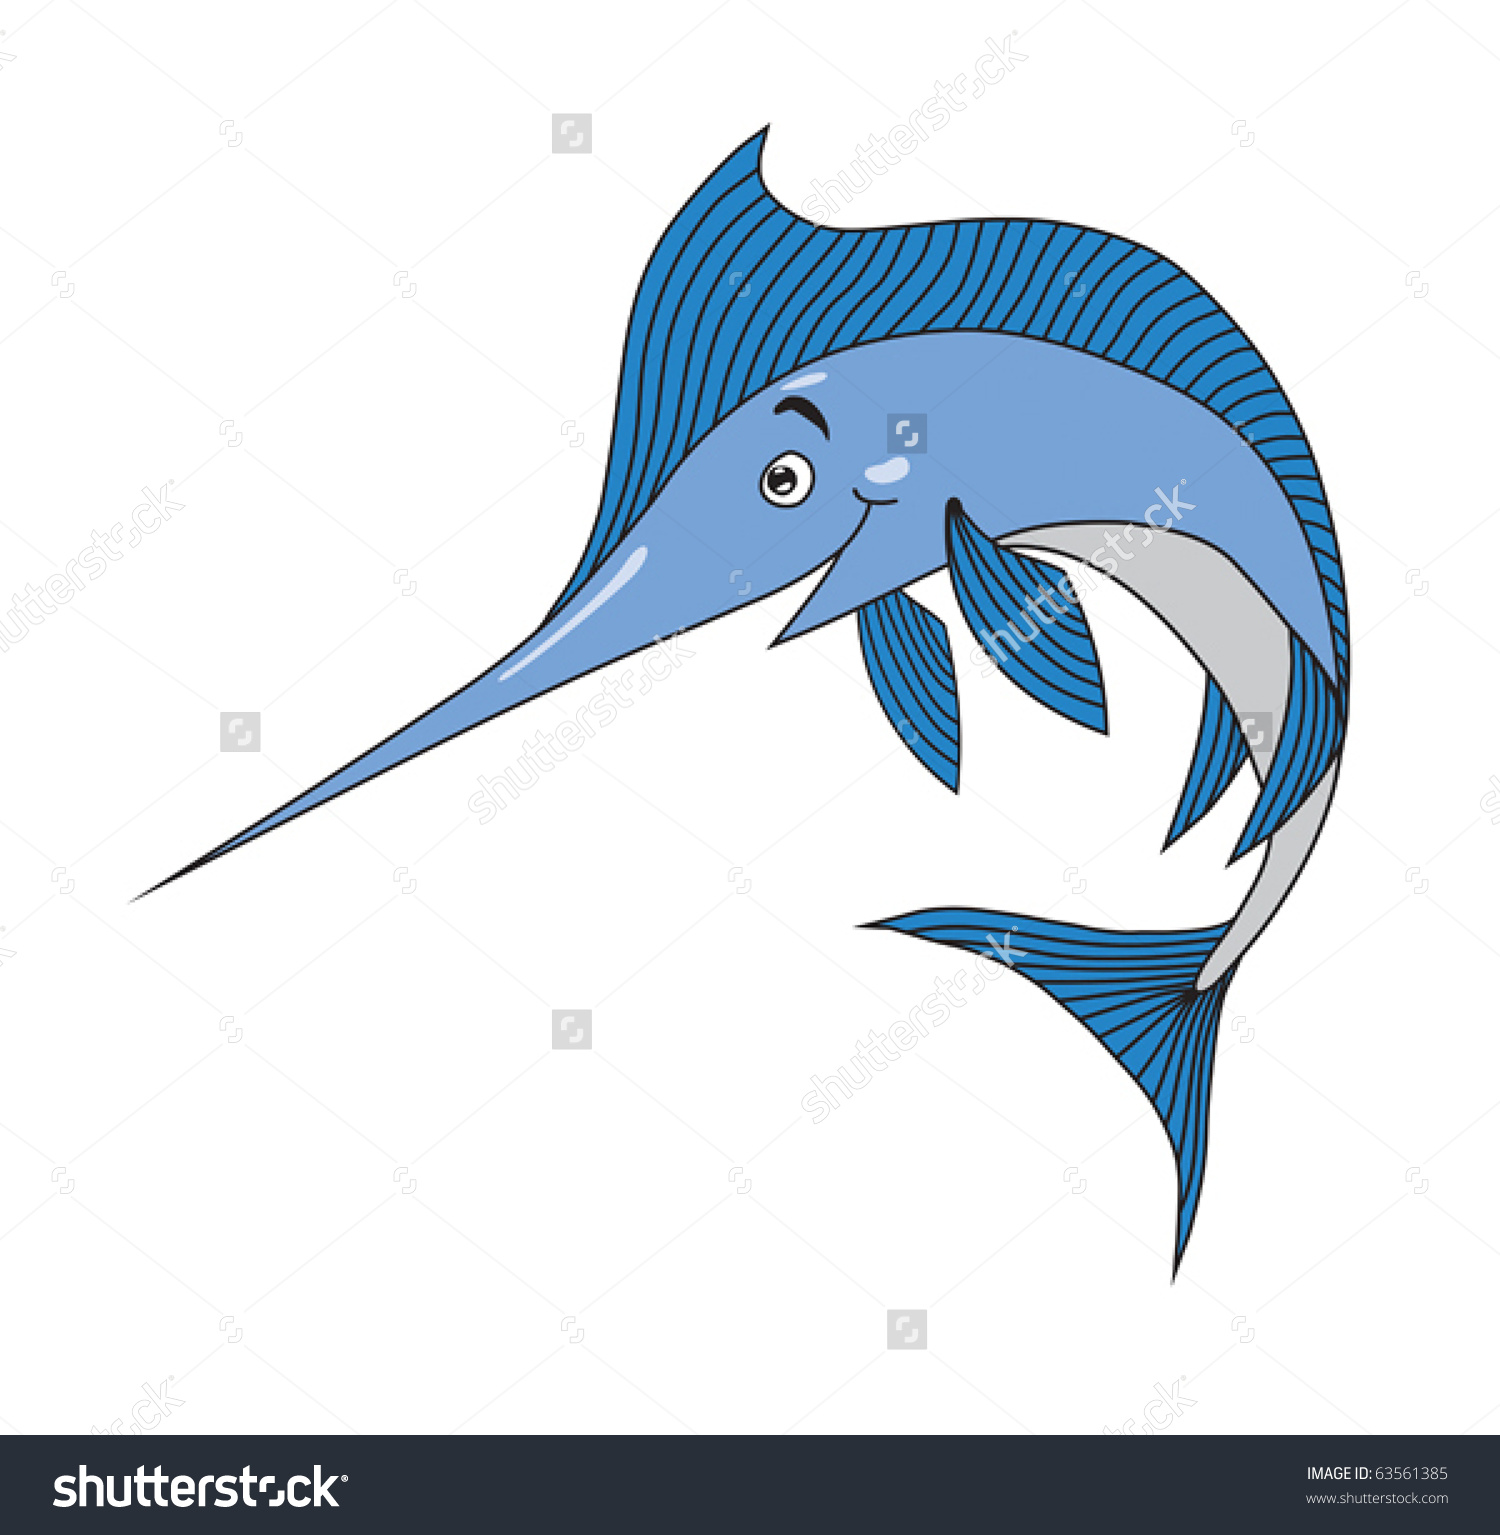 Swordfish Cartoon Vector Illustration Stock Vector 63561385.